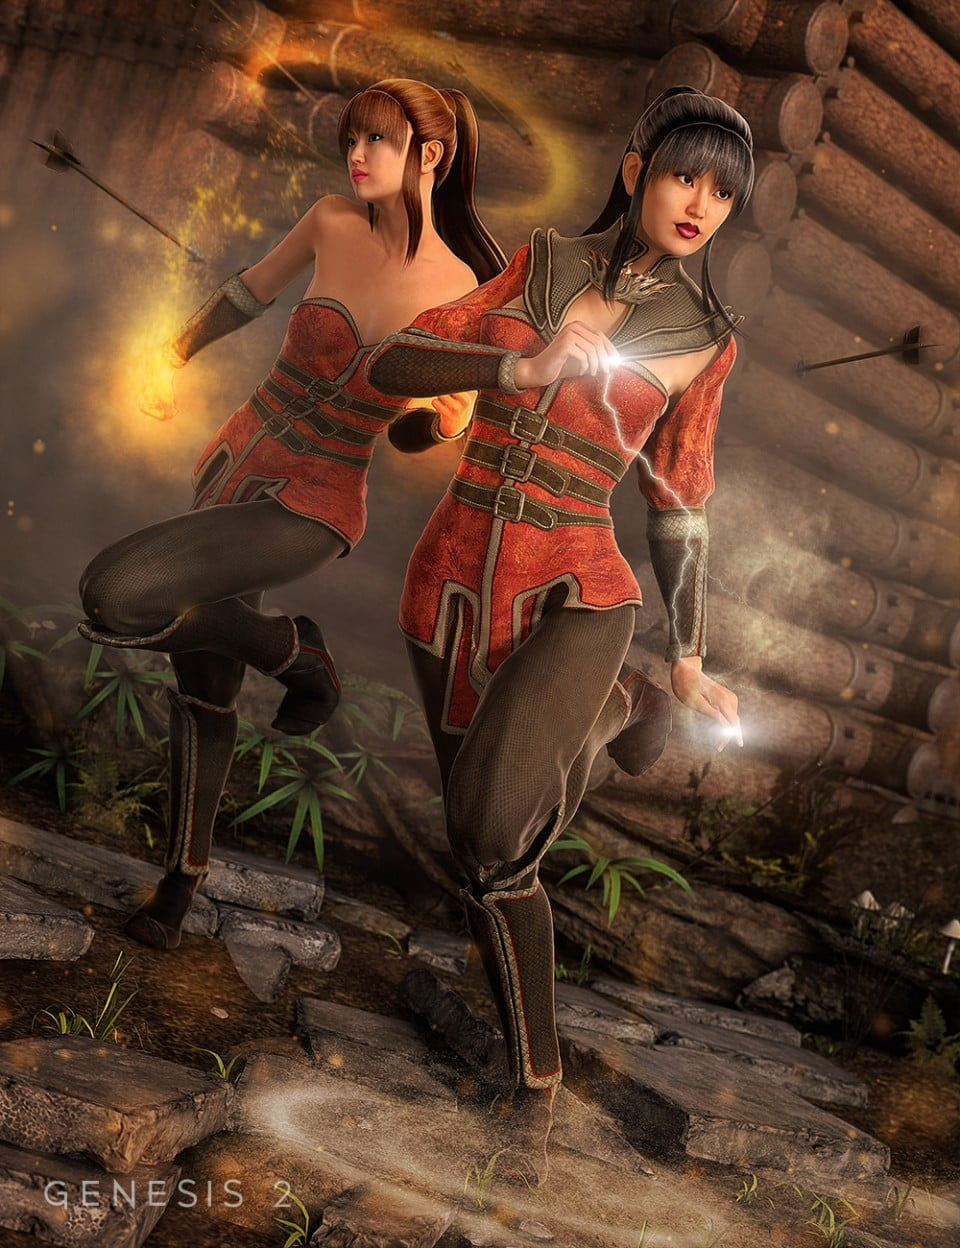 00-daz3d_fire-lilly-outfit-for-genesis-2-female_s